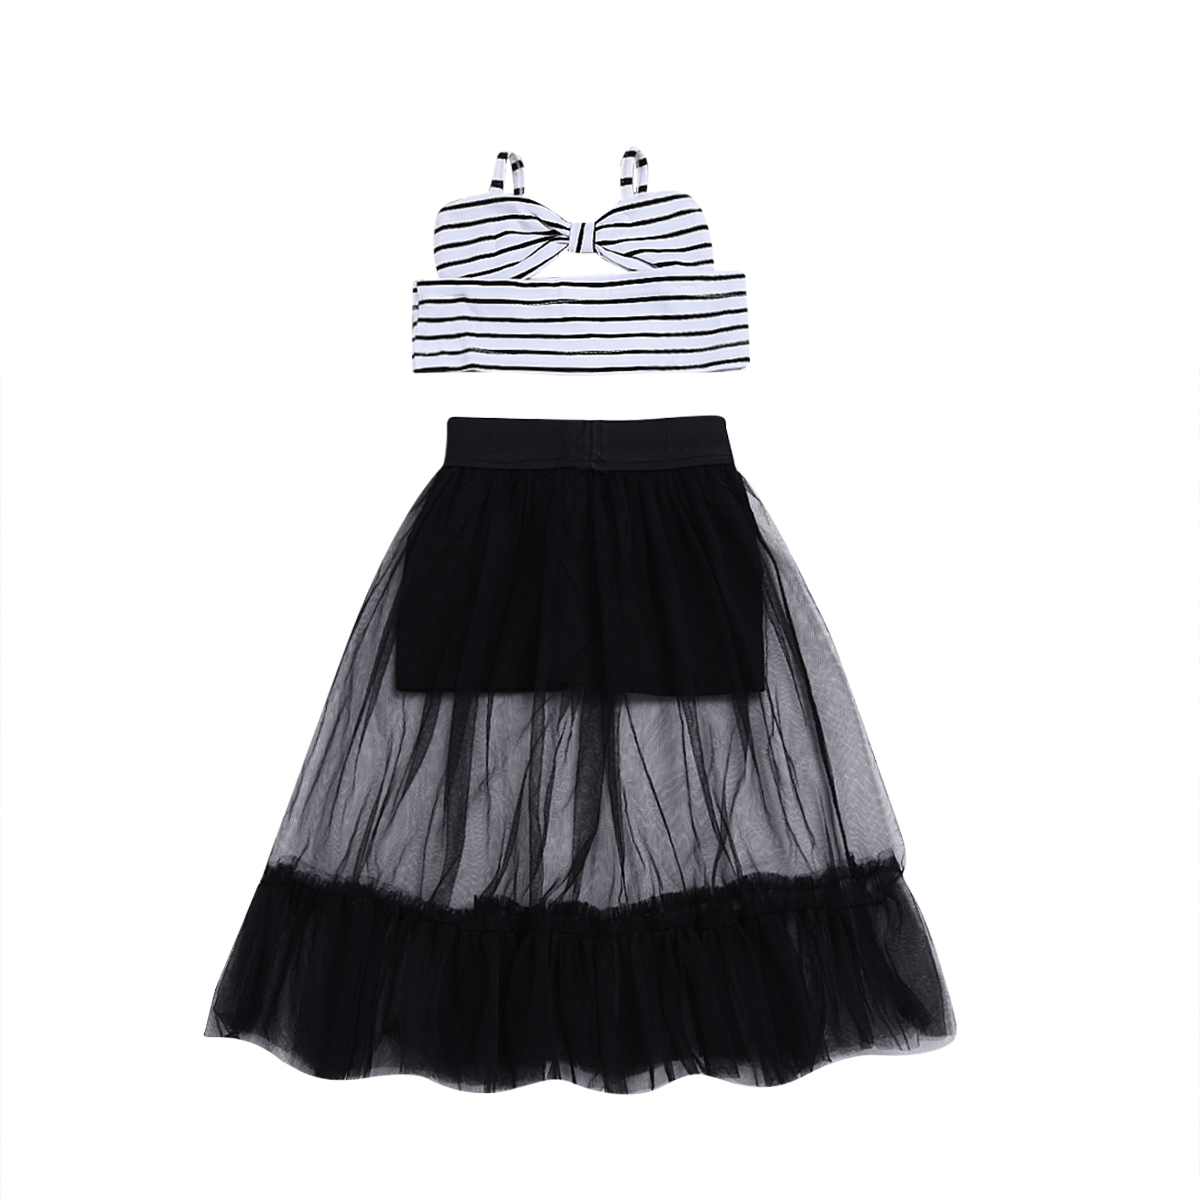 7f047199cab6 2019 Toddler Kid Baby Girls Dress Summer Baby Girl Clothes Set Sleeveless  Striped Crop Tops Ruffles Tulle Skirt Casual Dresses